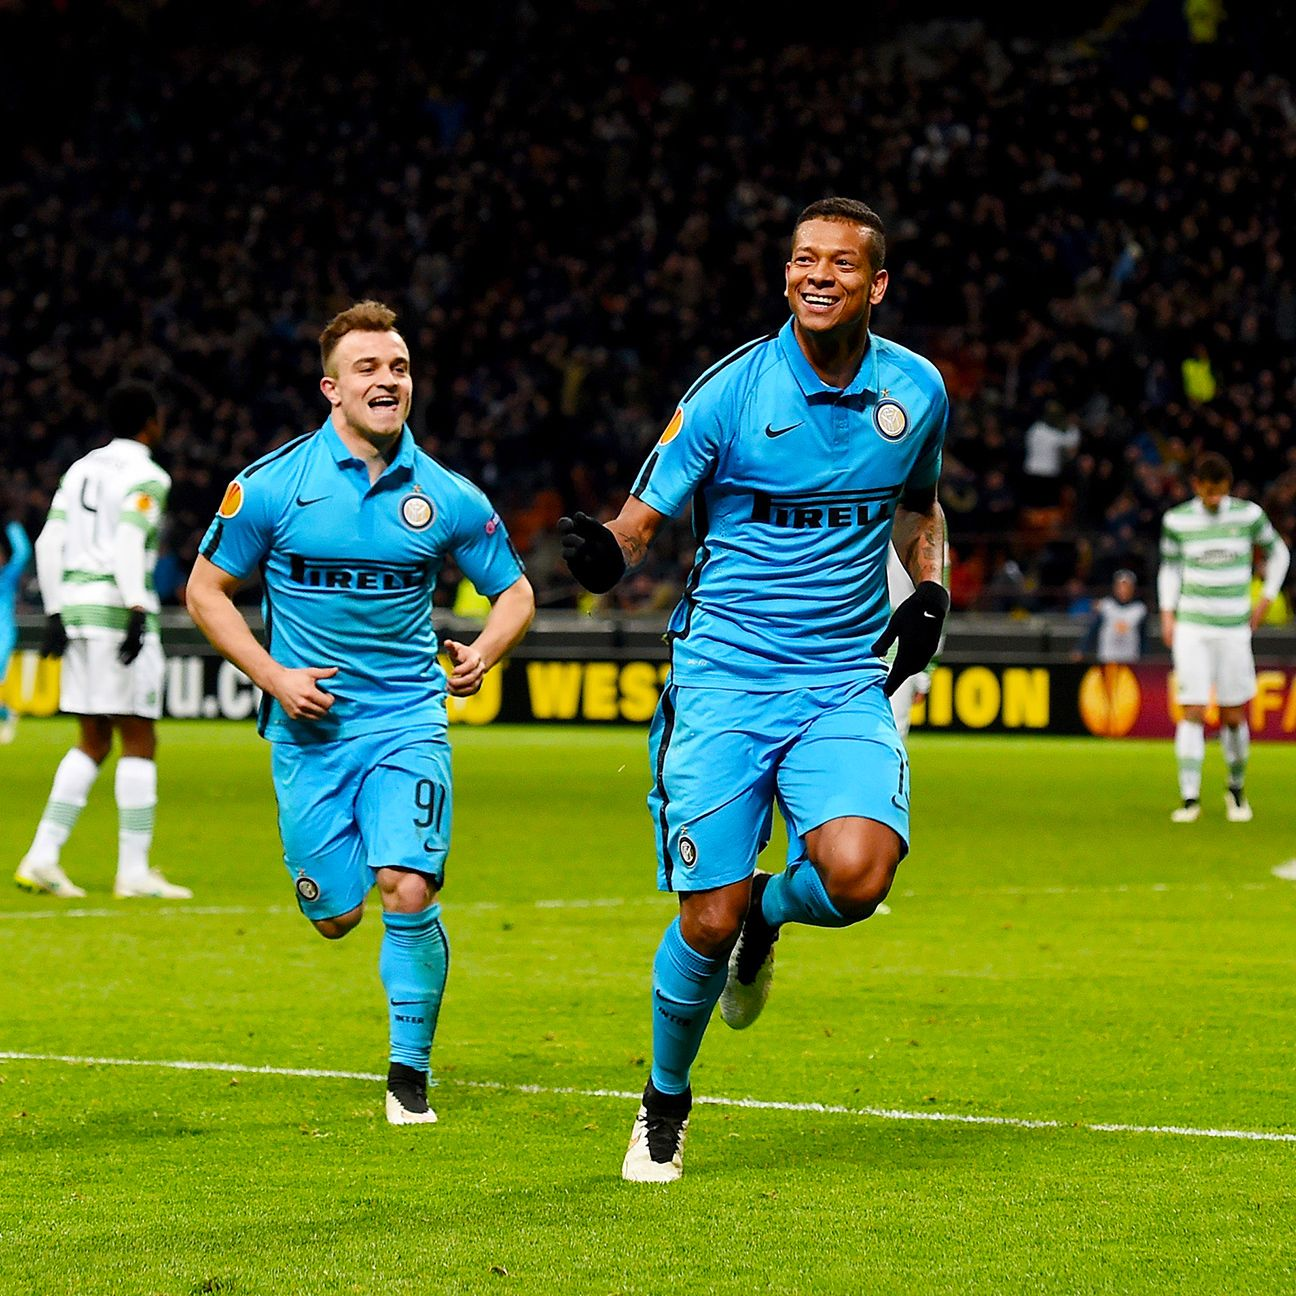 A rocket from Fredy Guarin paved the way for Inter's place in the Europa League round of 16.